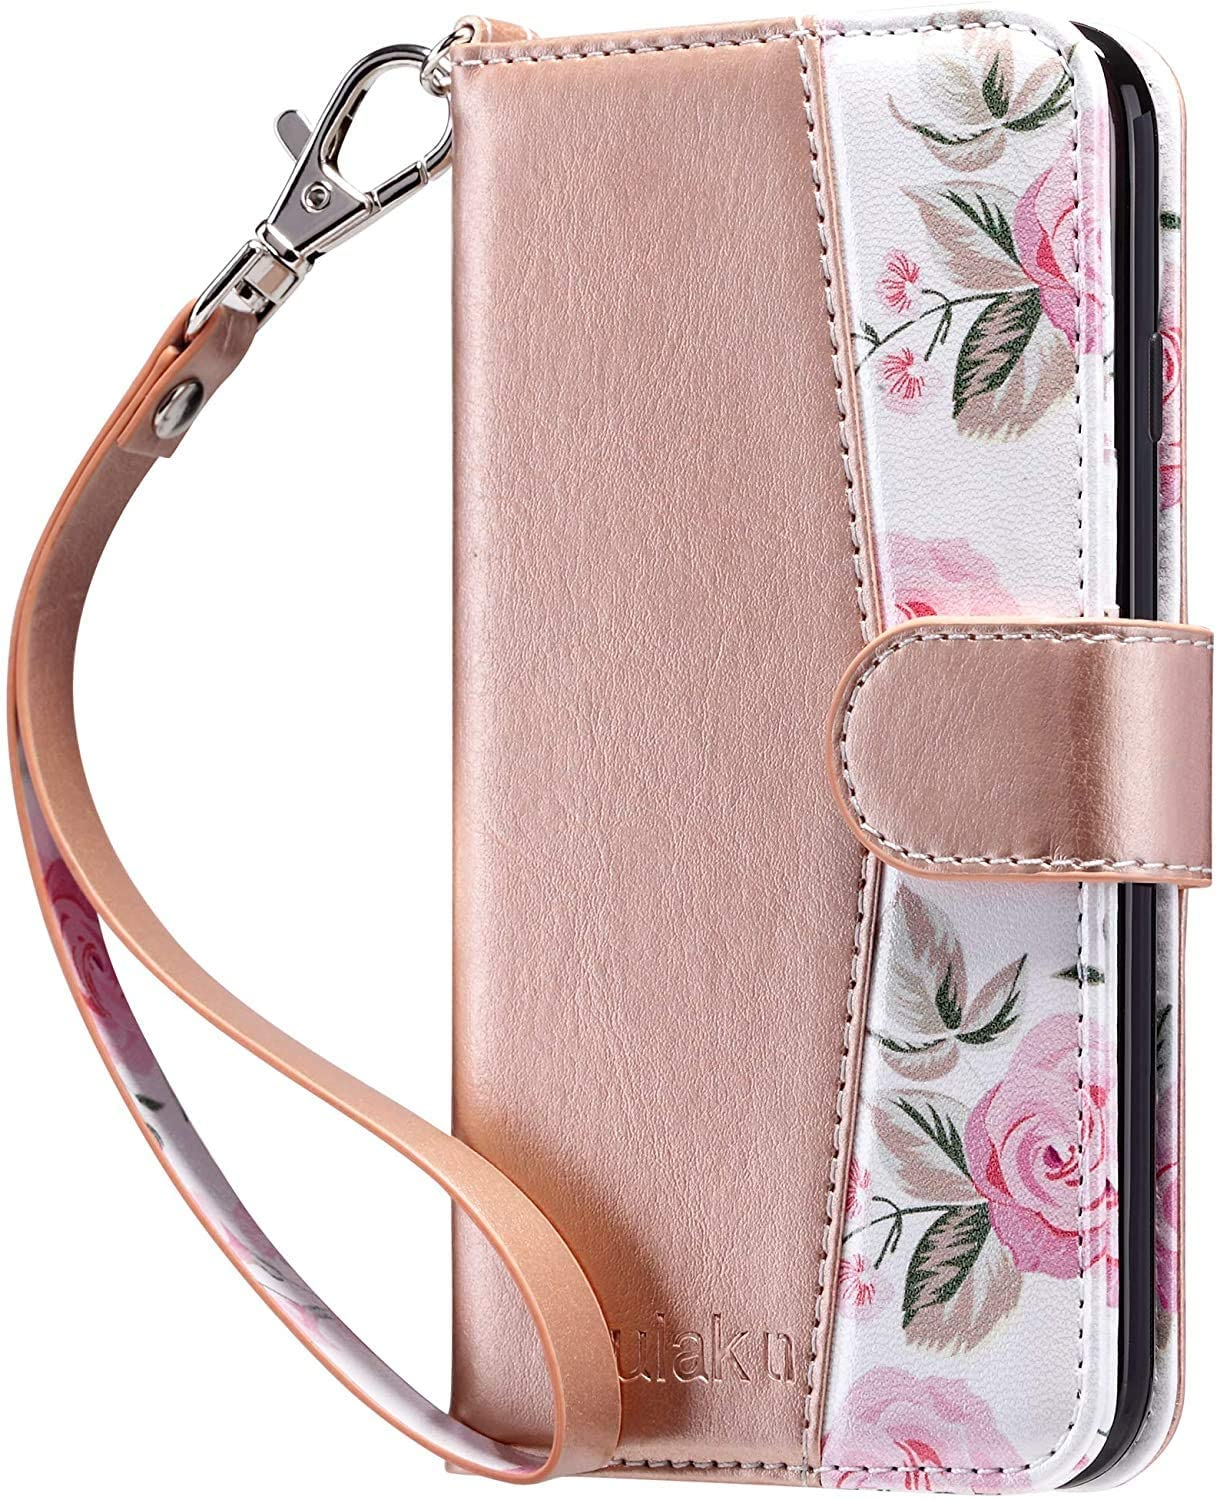 ULAK iPhone 8 Plus Case, iPhone 7 Plus Flip Wallet Case, PU Leather Wallet Case with Card Holders Kickstand Hand Strap Shockproof Protective Cover for Apple iPhone 7 Plus/8 Plus 5.5 Inch, Floral